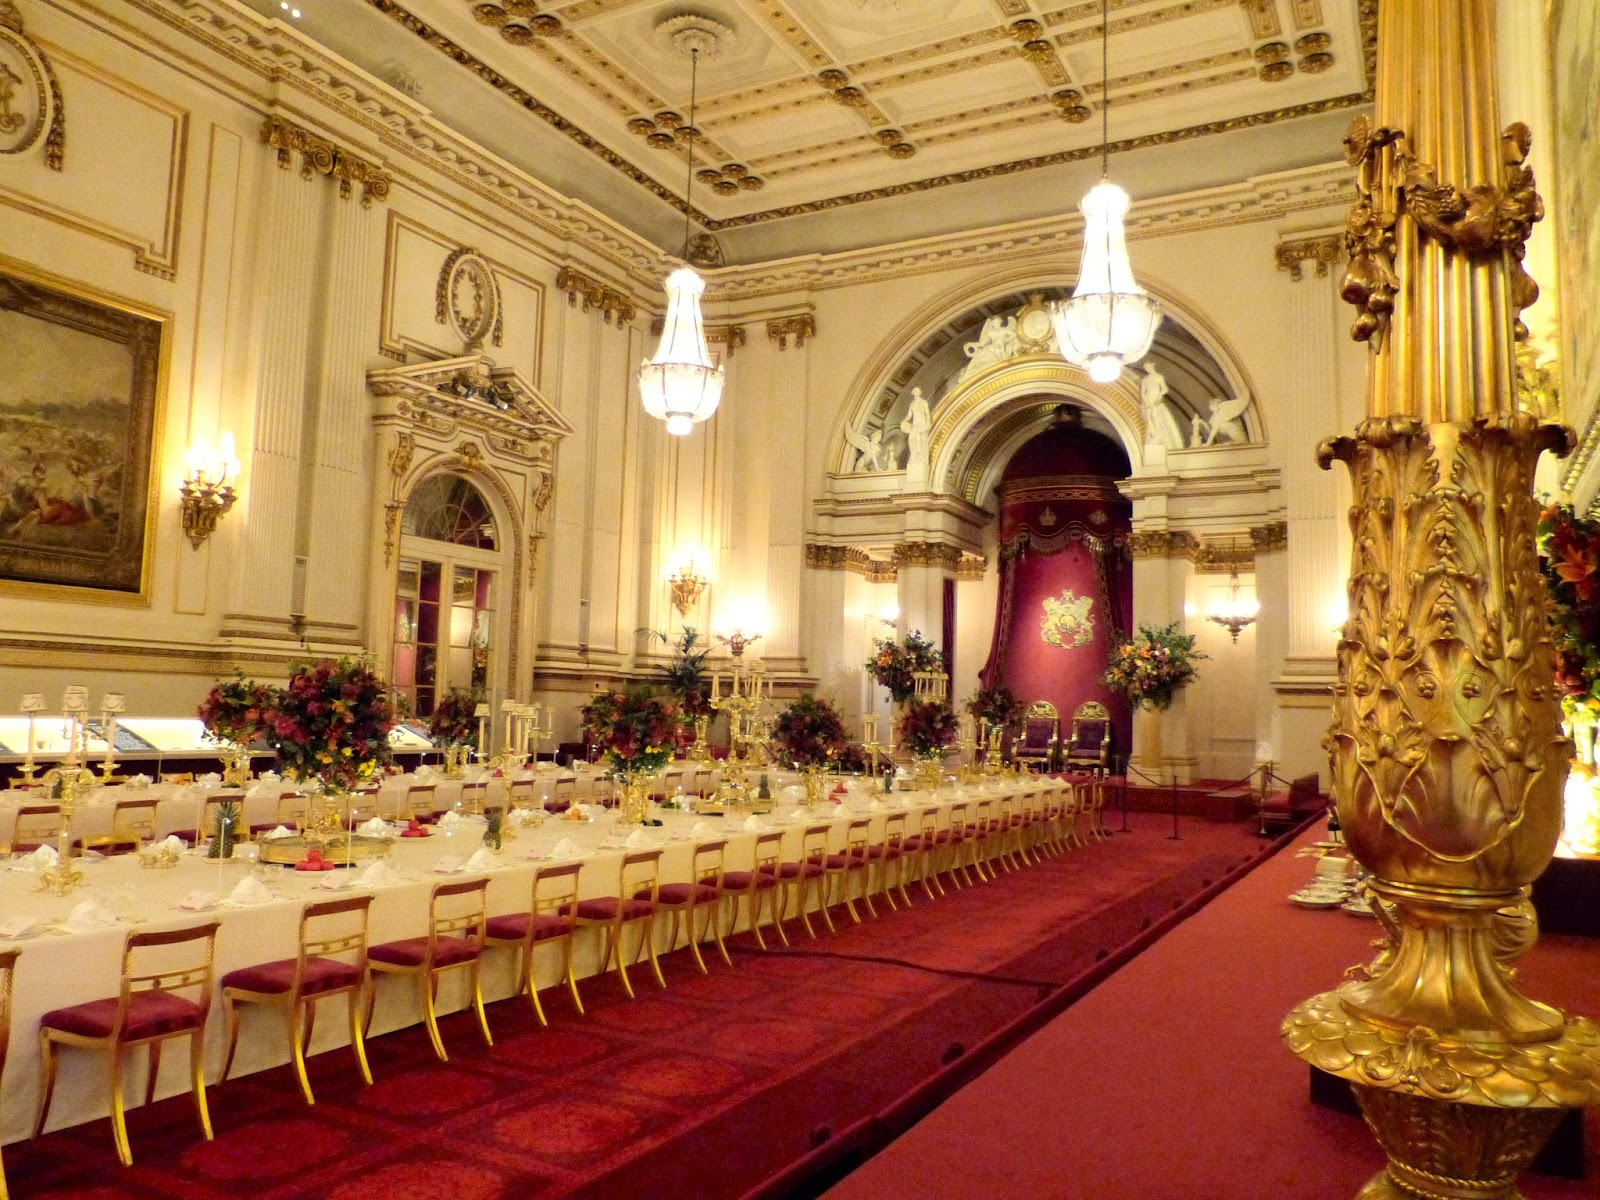 Regency History A Royal Welcome 2015 exhibition at  : Ballroom2B1 from www.regencyhistory.net size 1600 x 1200 jpeg 482kB